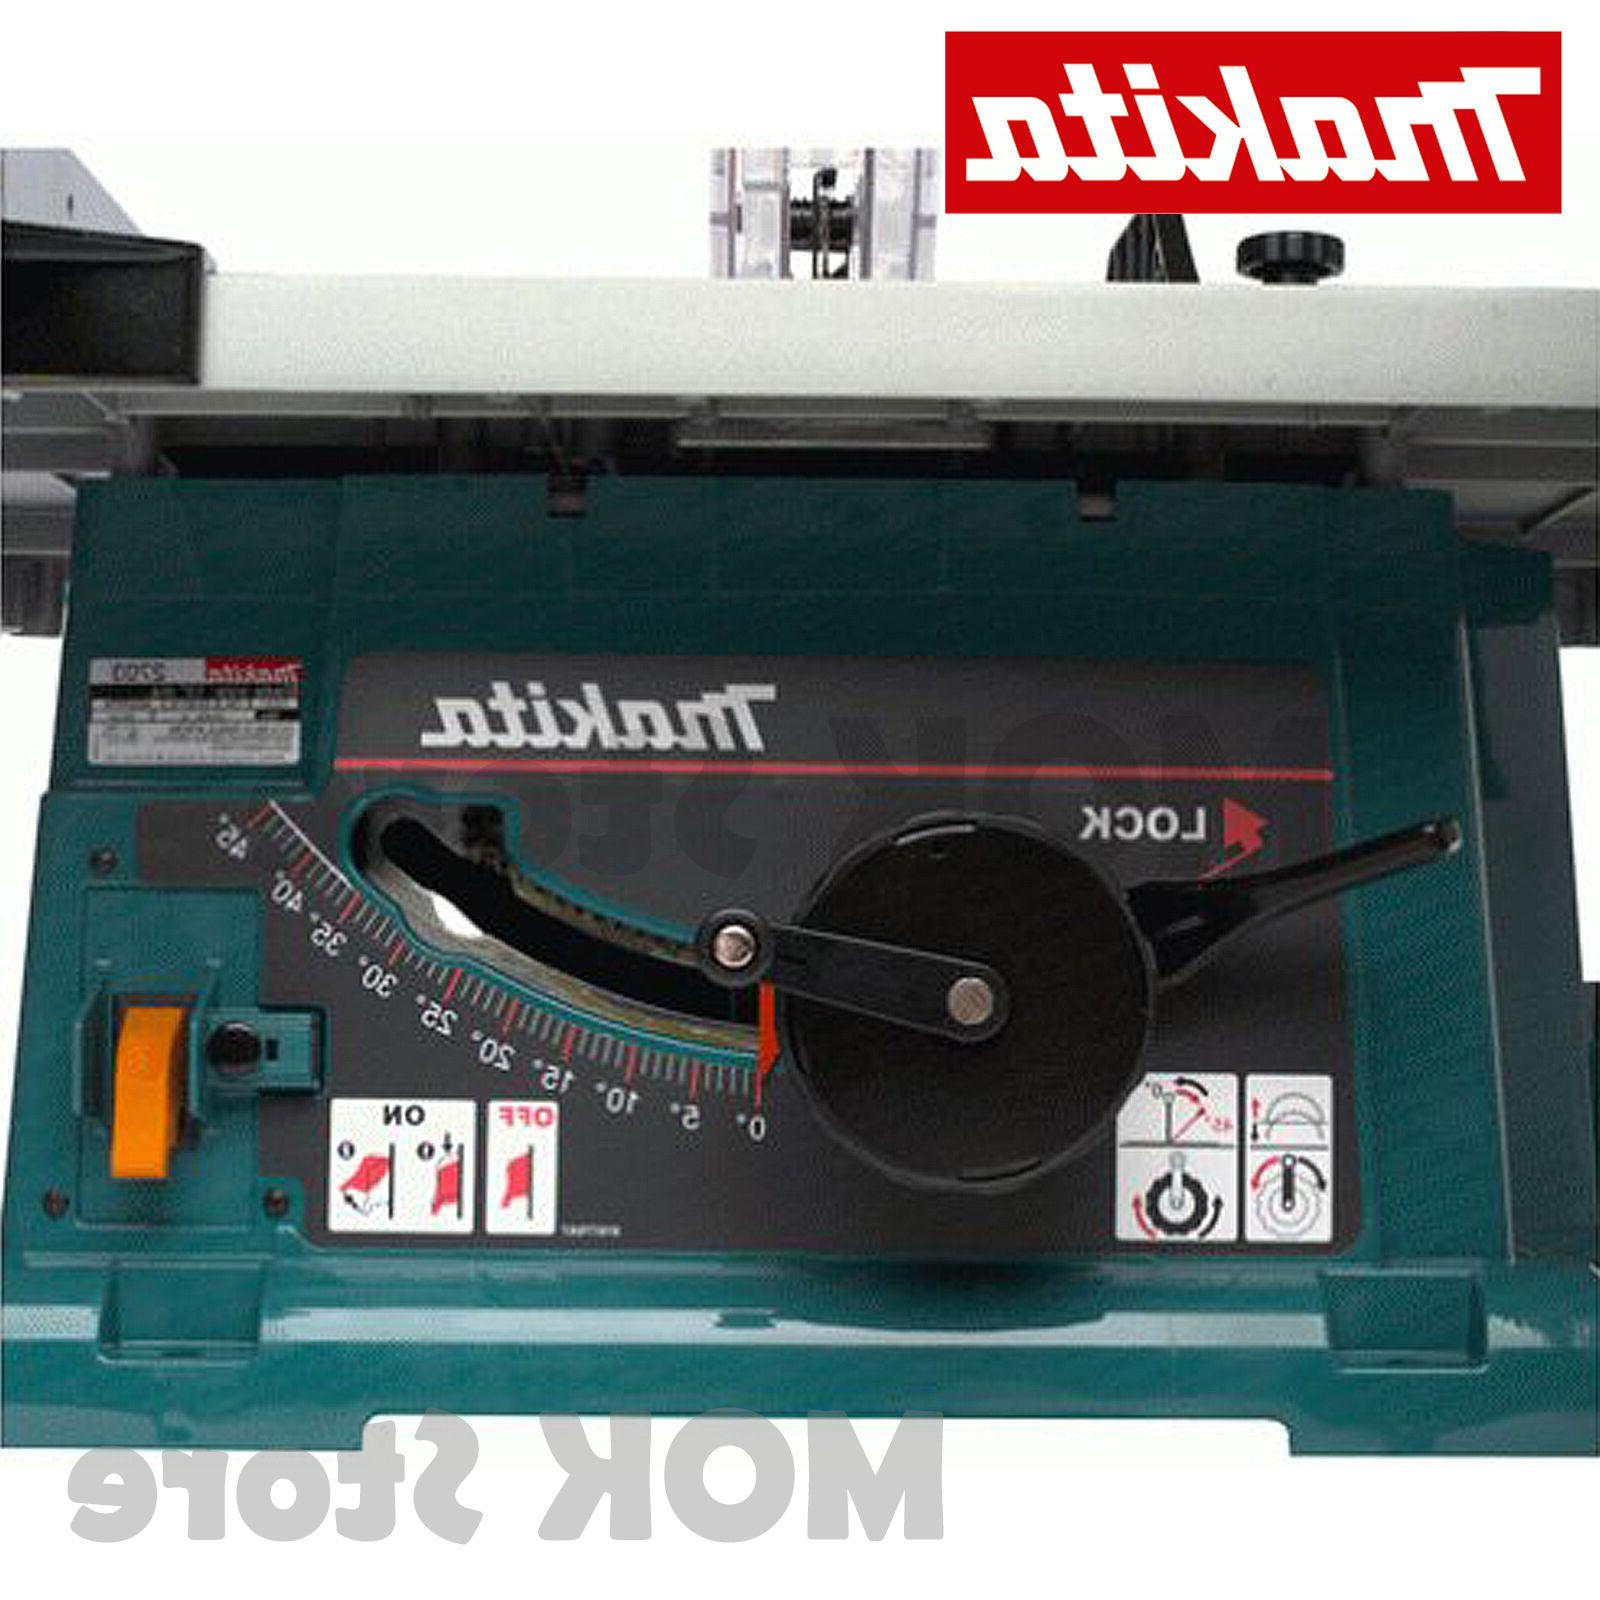 Makita Amp Saw for Professionals